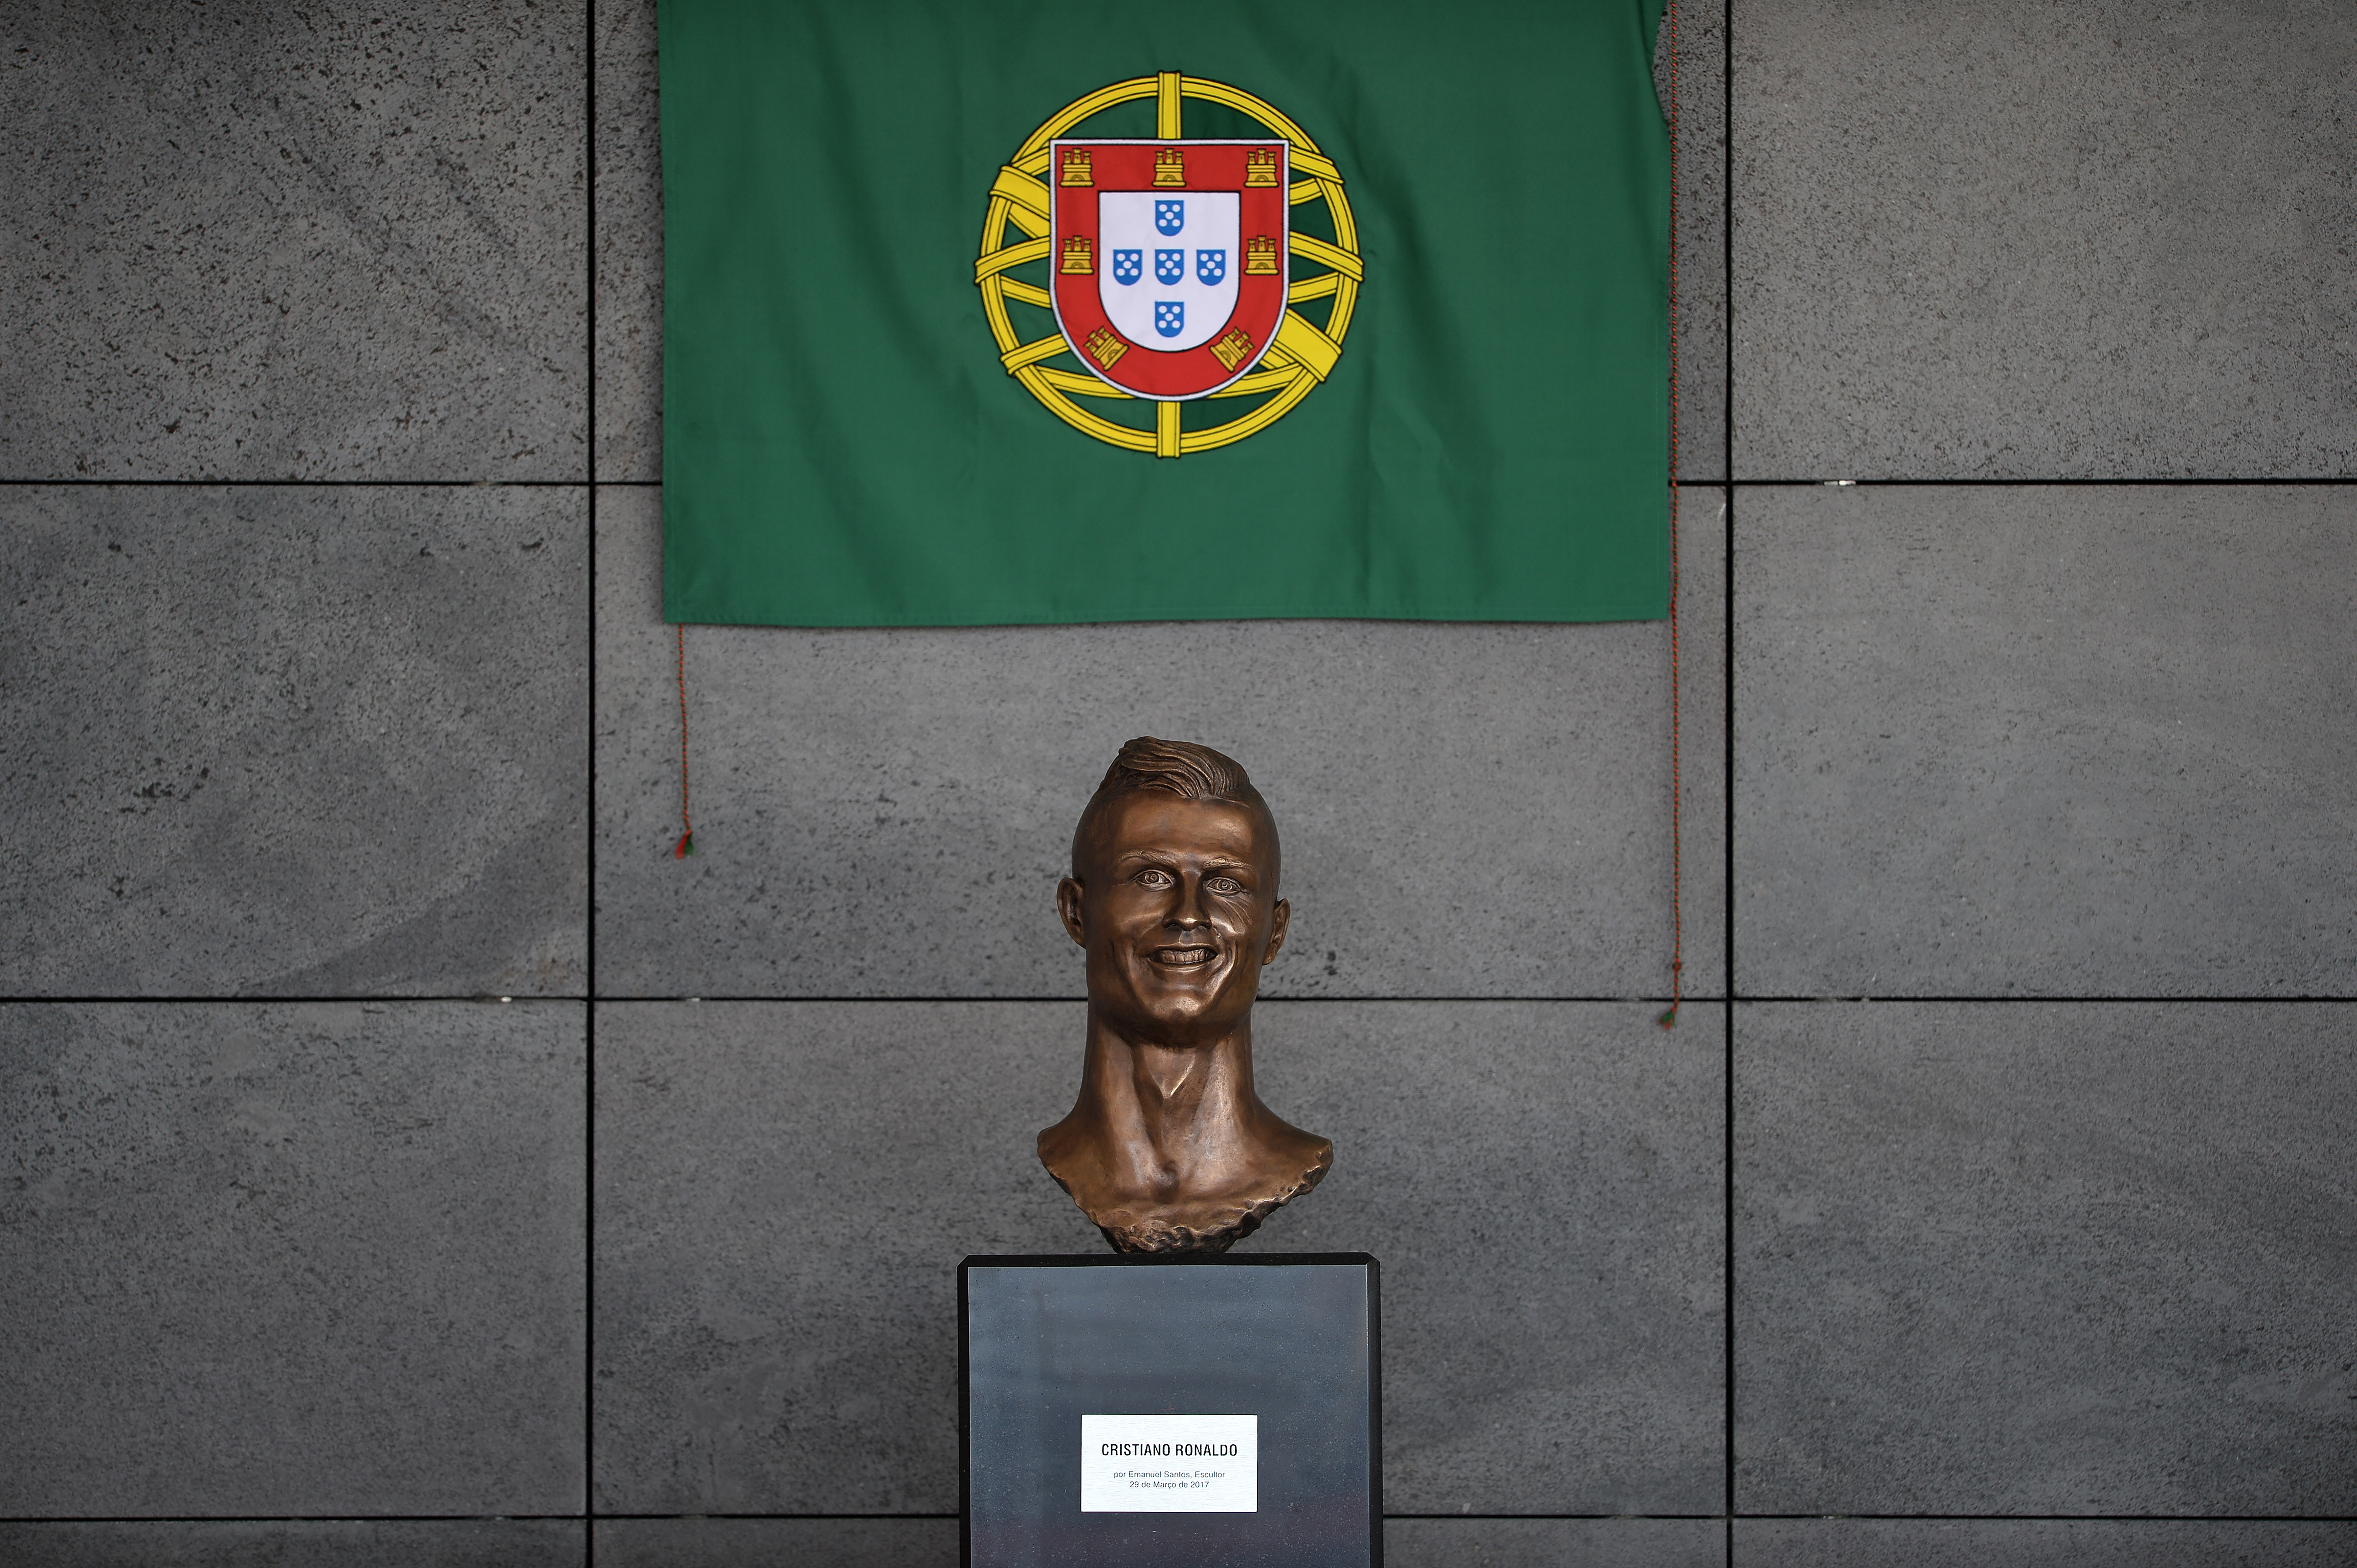 Maligned Ronaldo statue replaced at Madeira airport